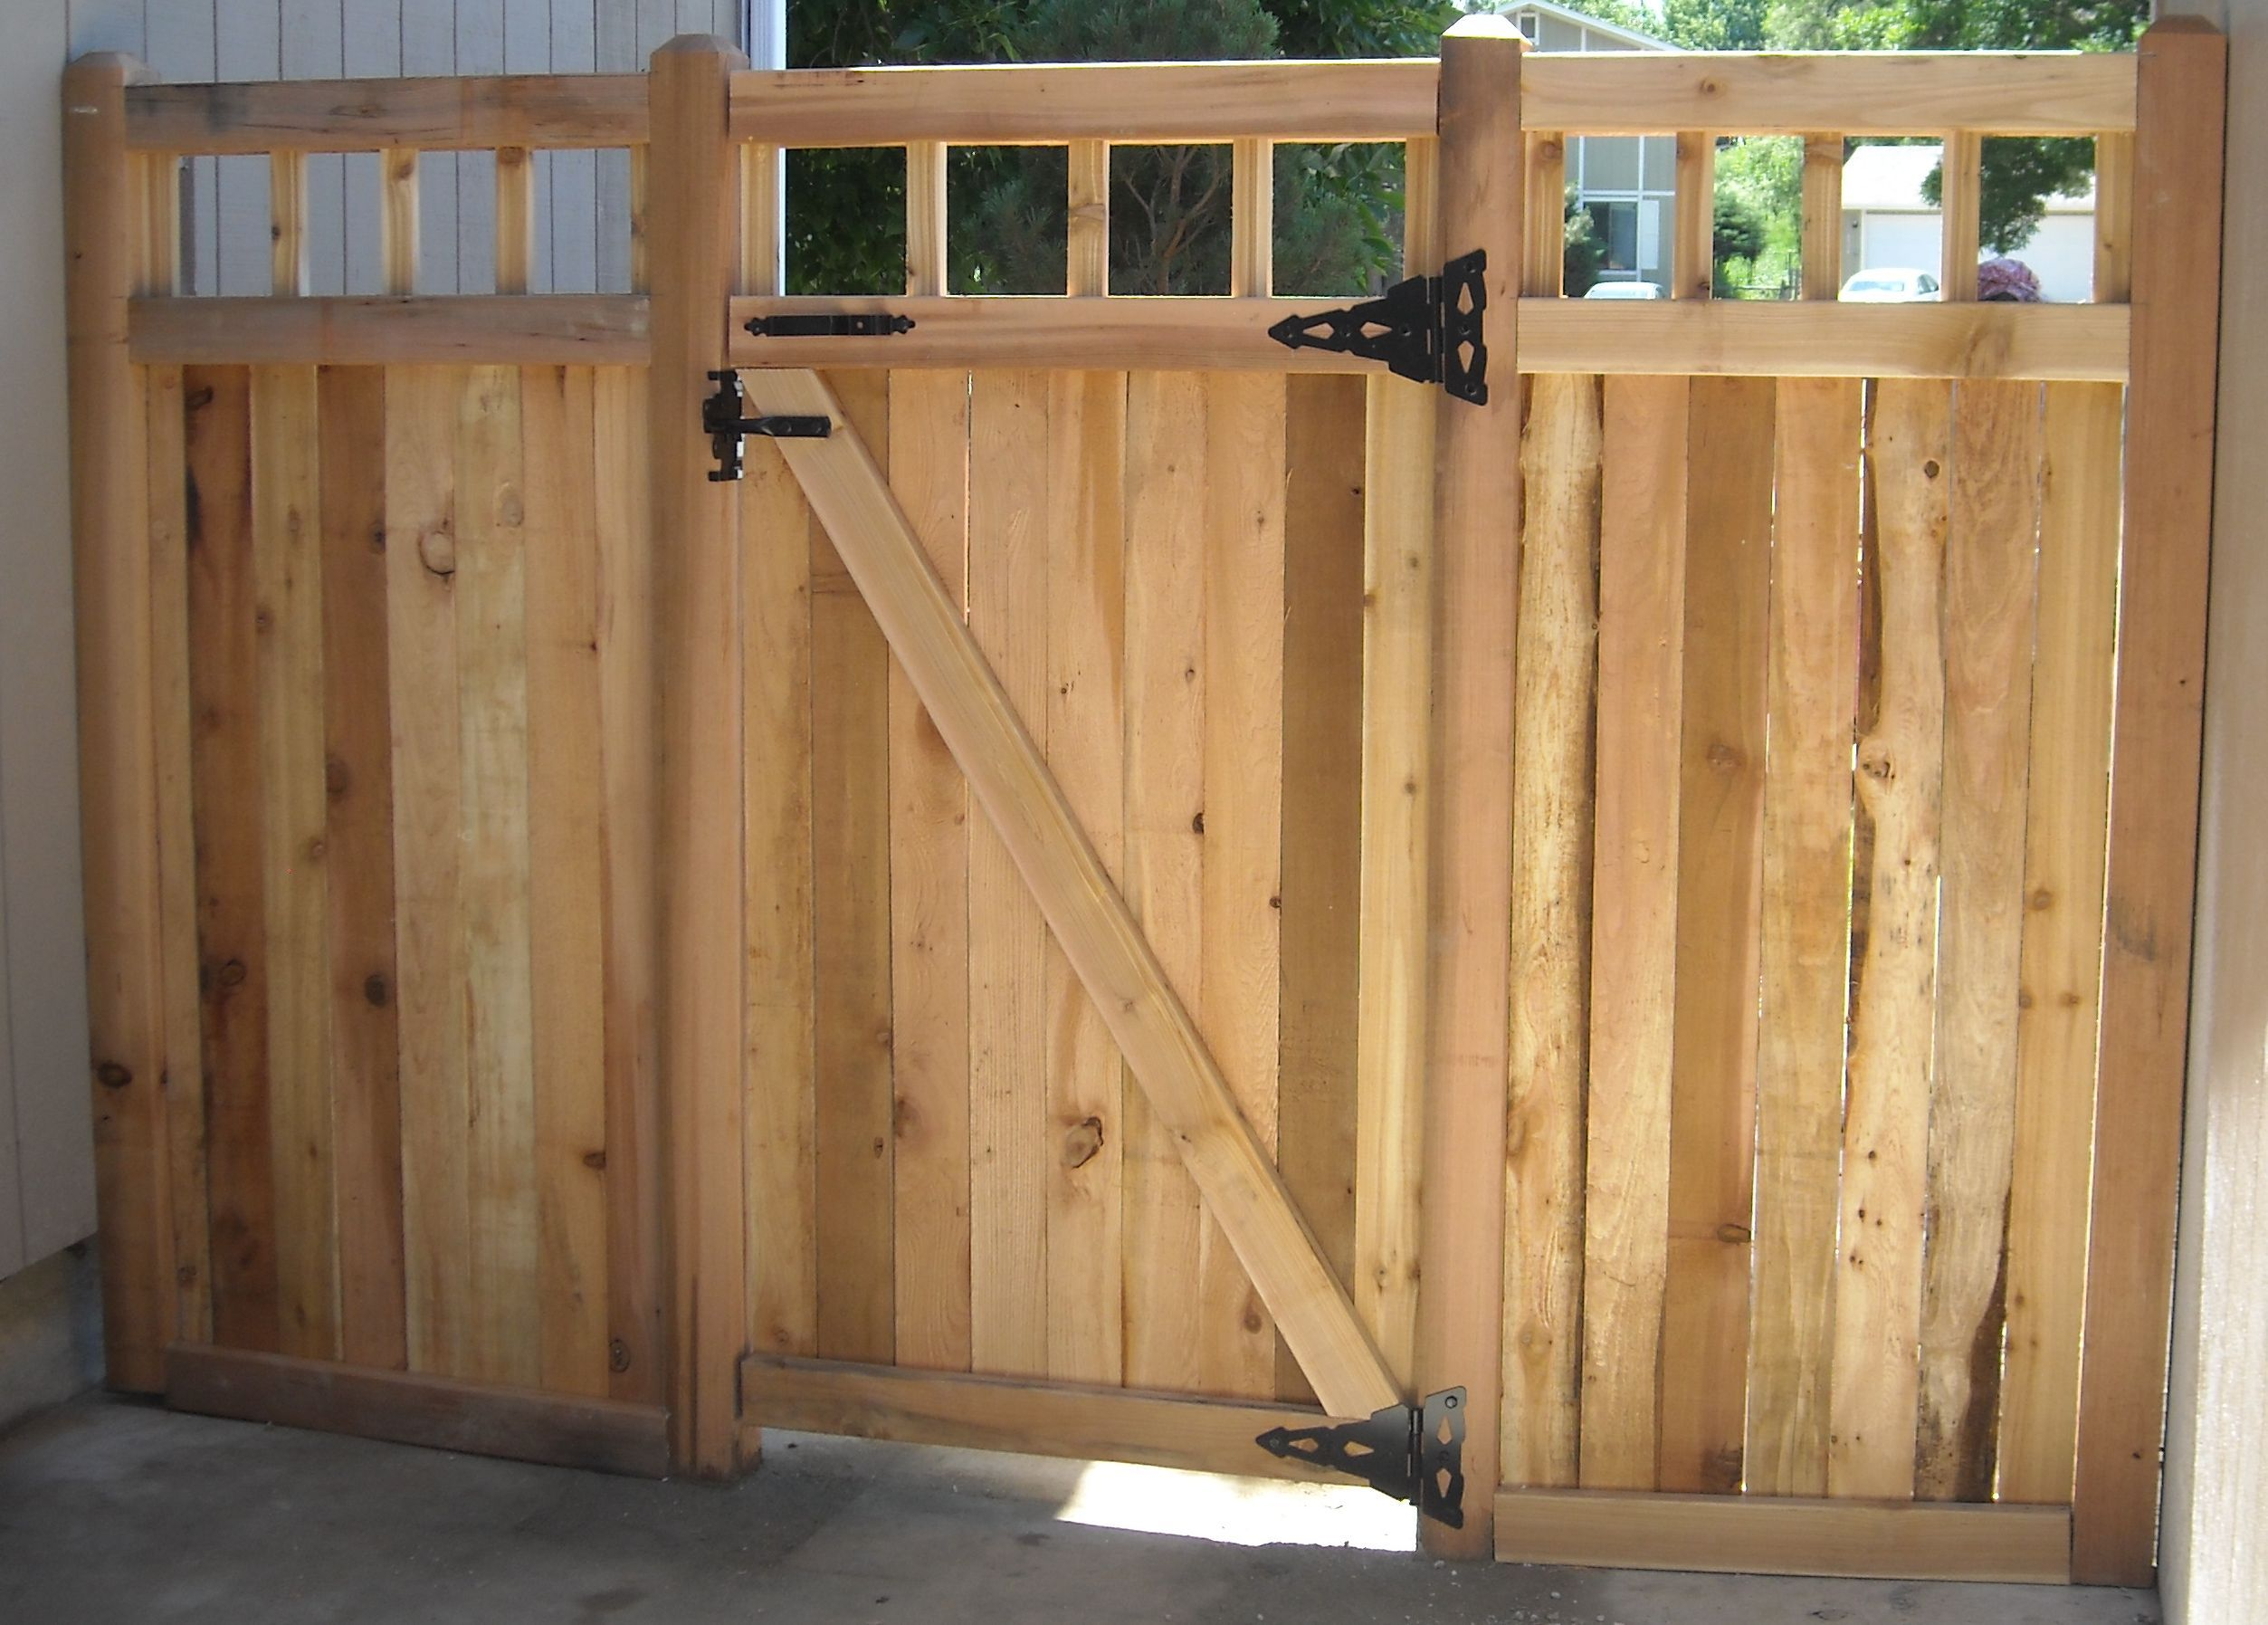 Fence Gate Design Ideas wooden fence gates designs fence gate varian fence gate vinyl chesapeak fence Old Screen Door As A Garden Gate Description From Pinterestcom I Searched